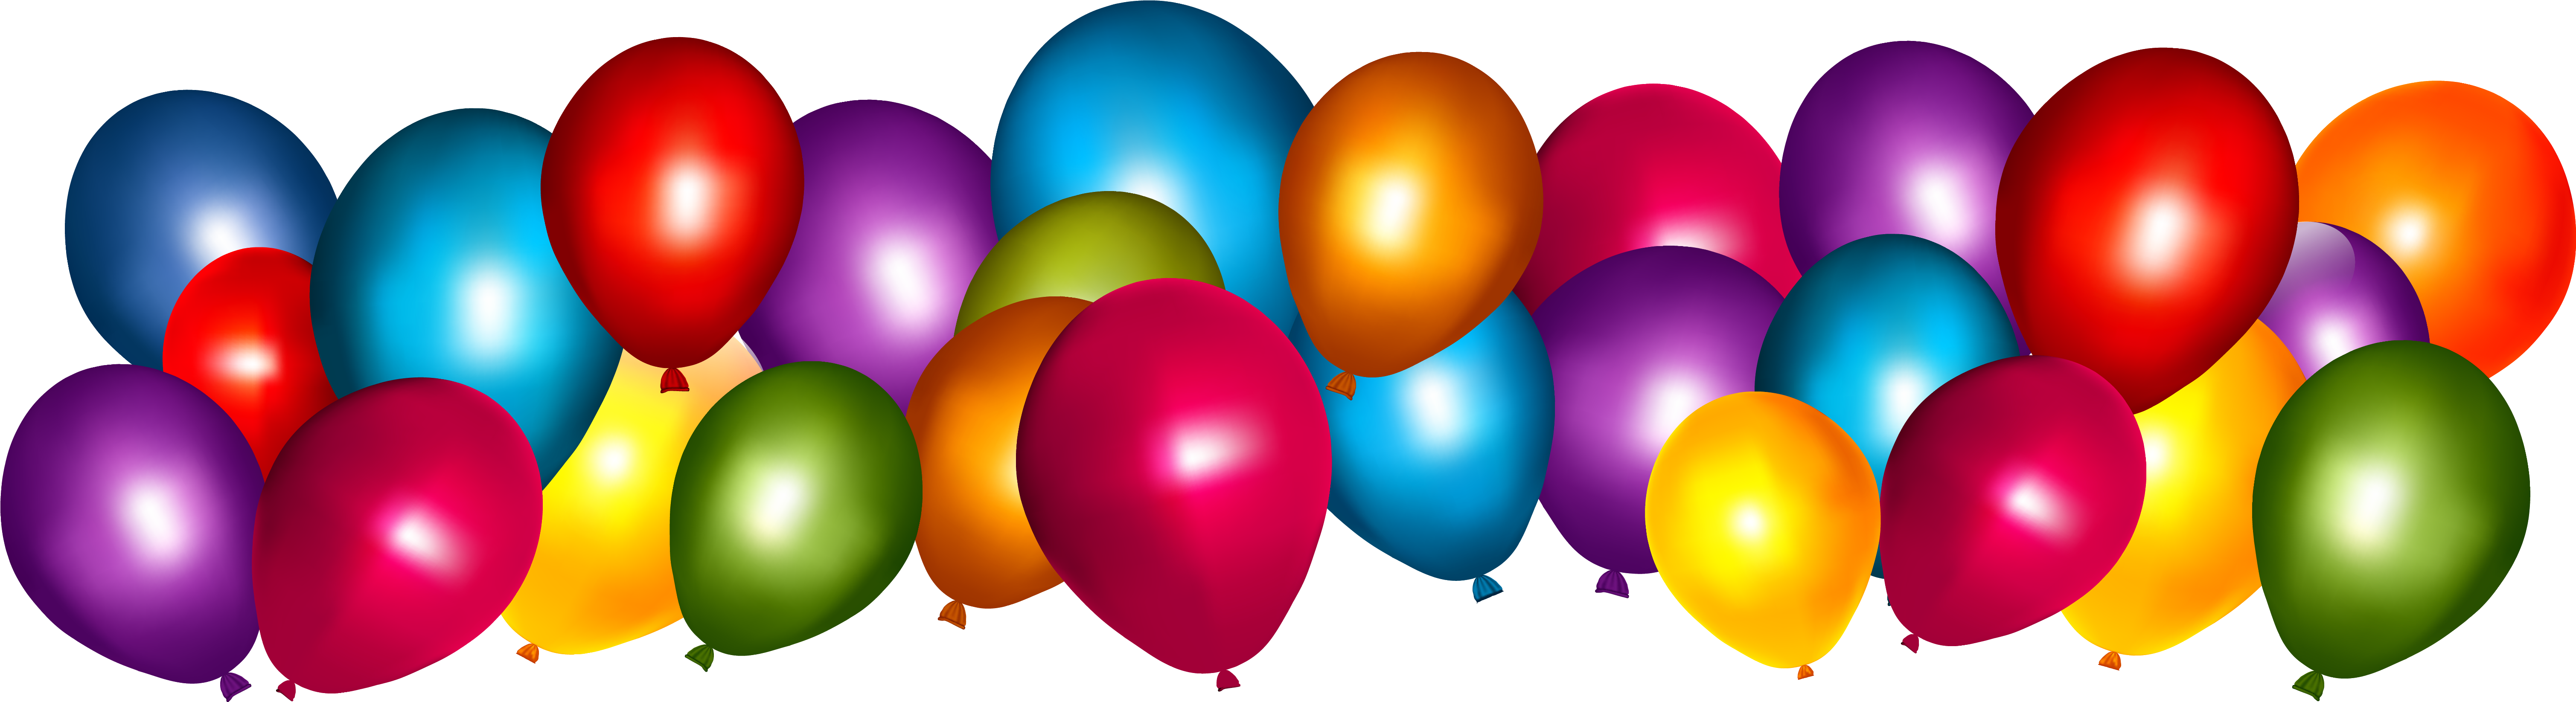 Png Colorful Balloons Clipart Balloon Png Full Size Png Download Seekpng